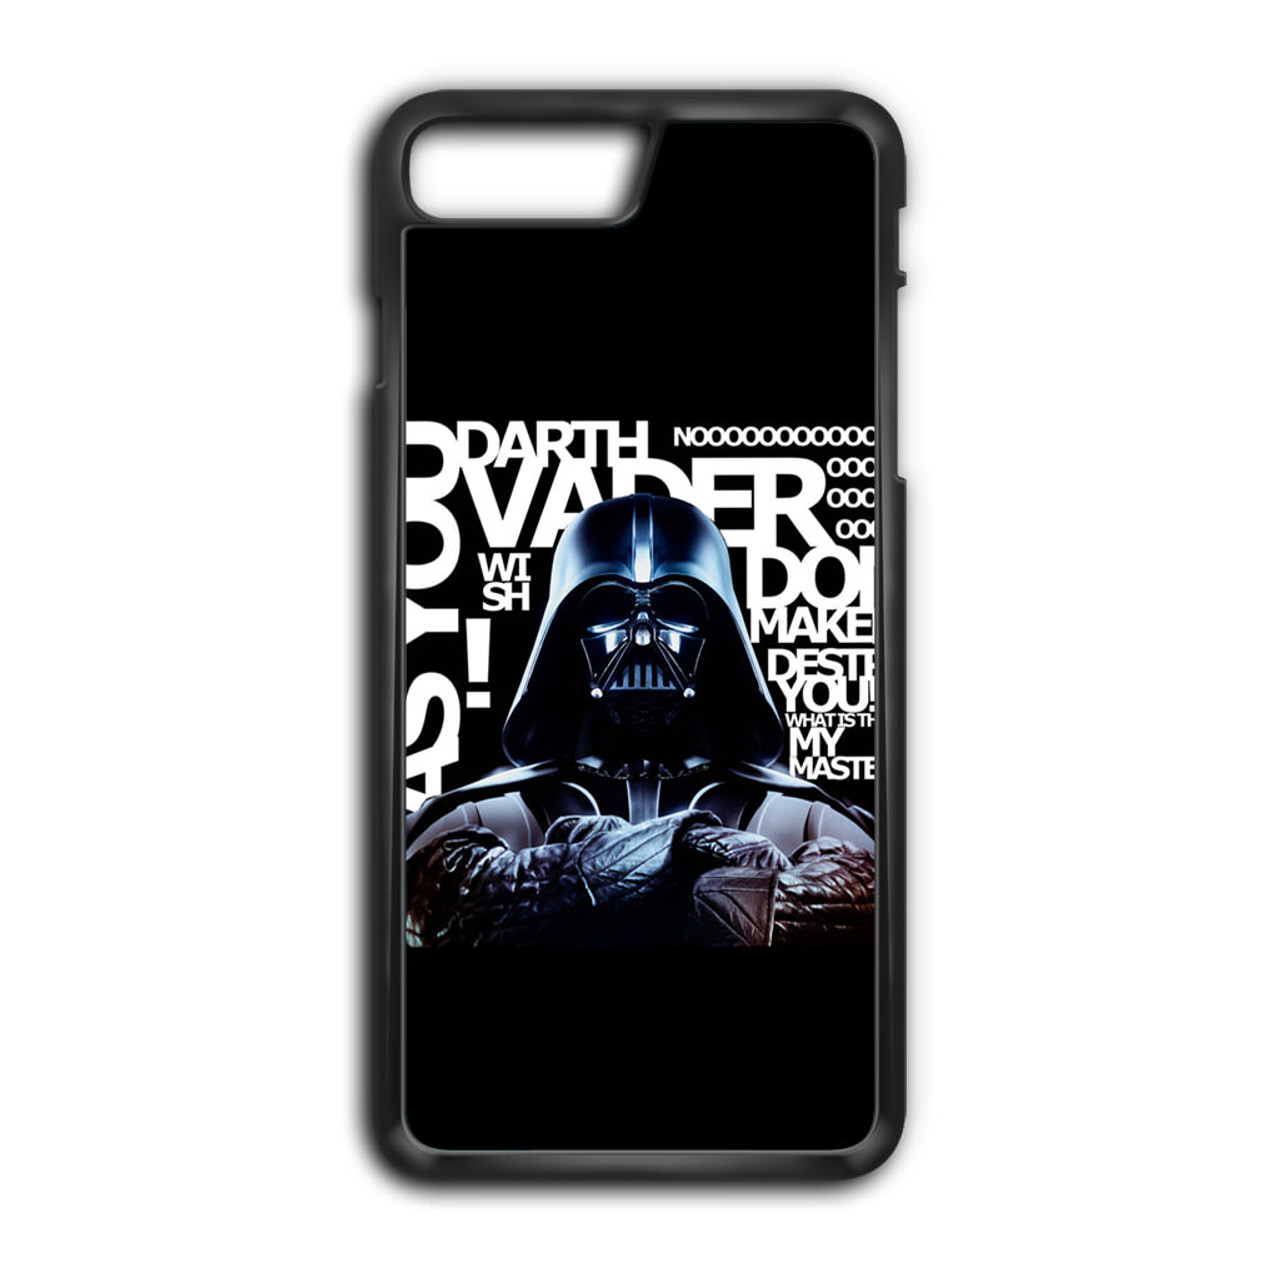 finest selection 3084b a9888 Star Wars Darth Vader Quotes iPhone 8 Plus Case